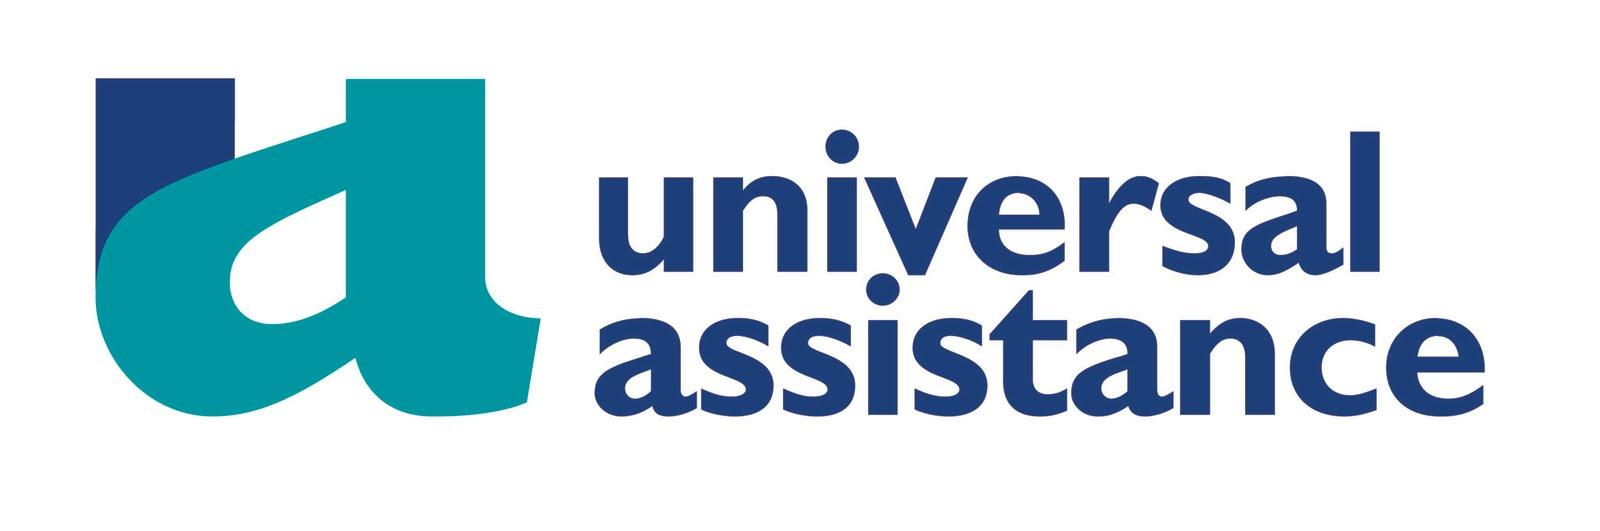 universal assistance